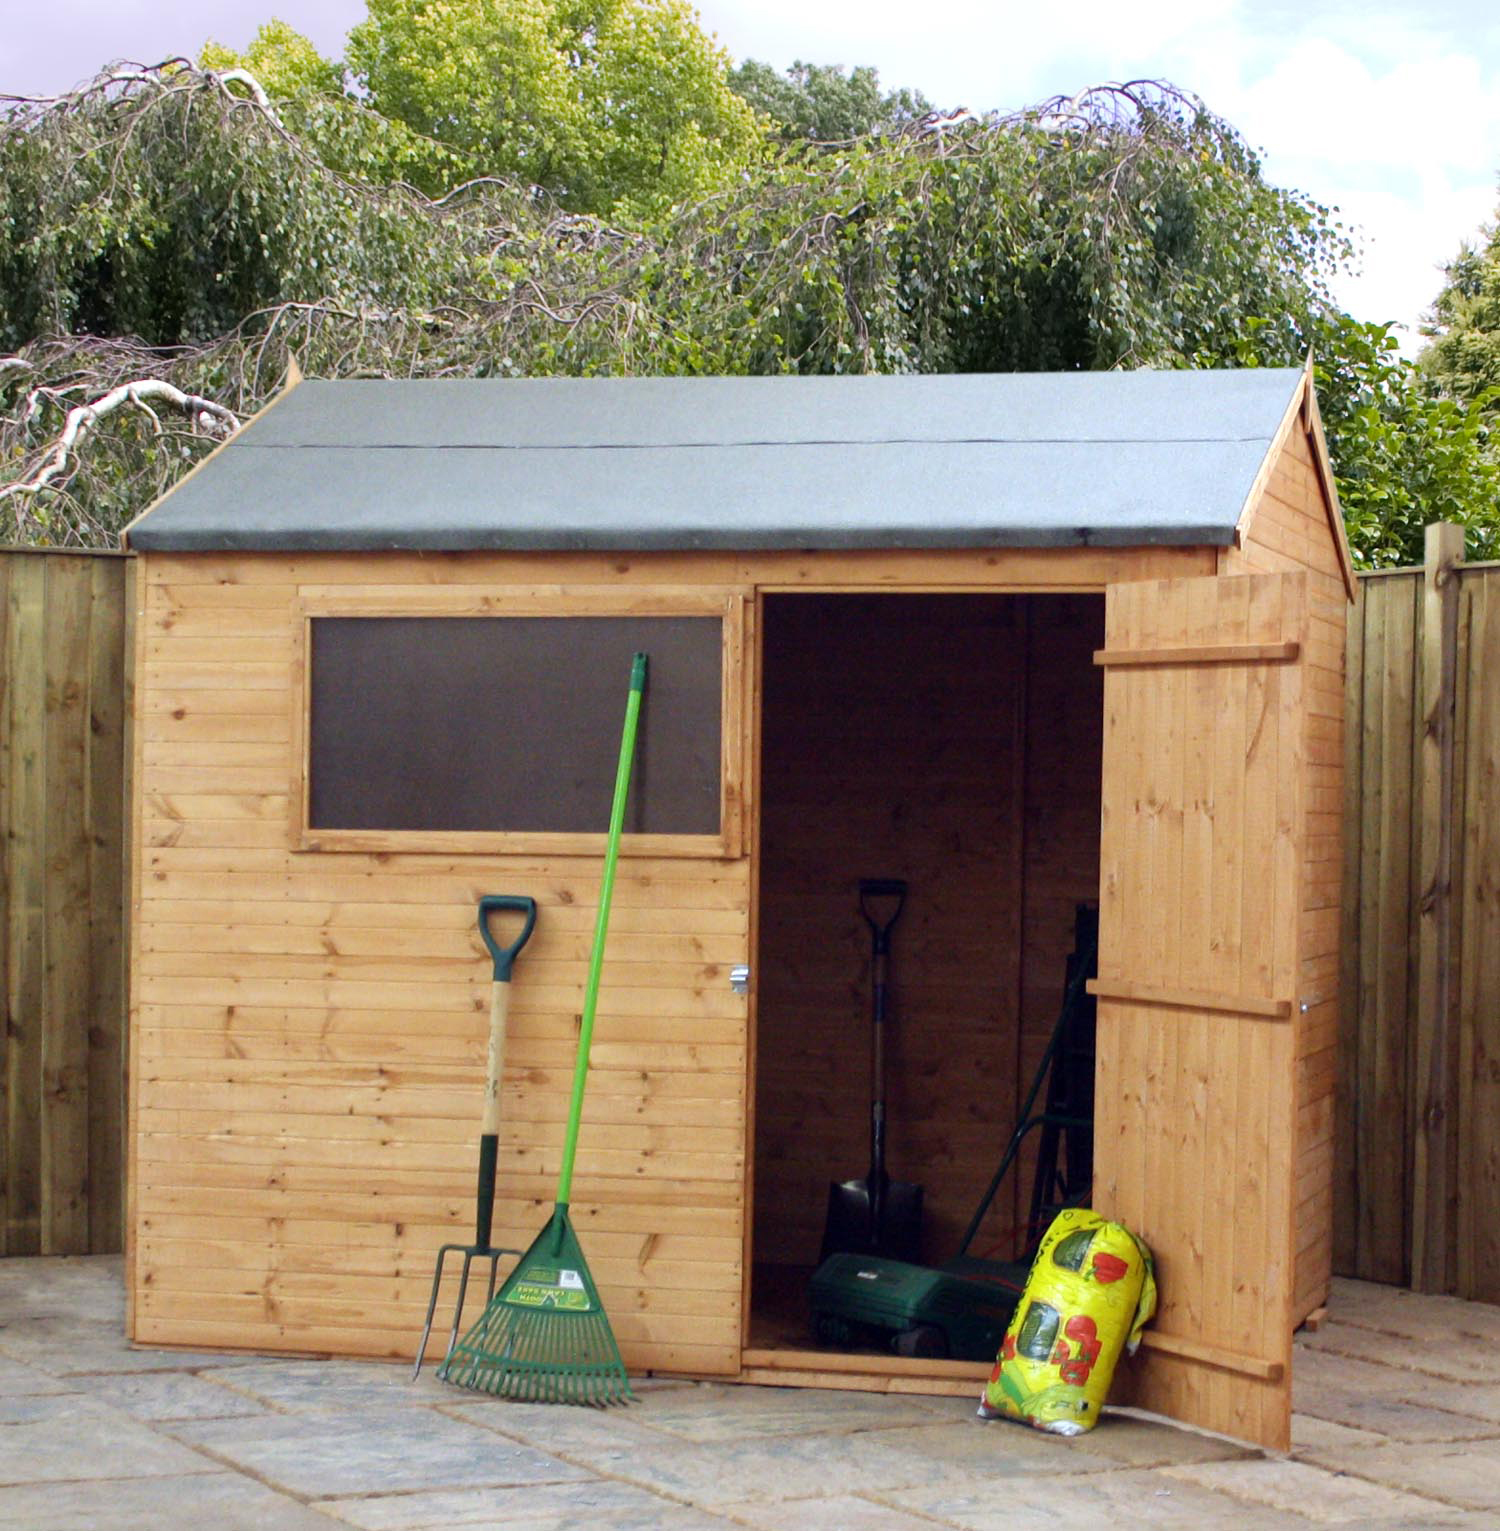 Shedswarehousecom Oxford Disco 2119 Installed 6ft X 8ft 191m X 239m Tongue And Groove Reverse Apex Shed With Single Door 1 Window 10mm